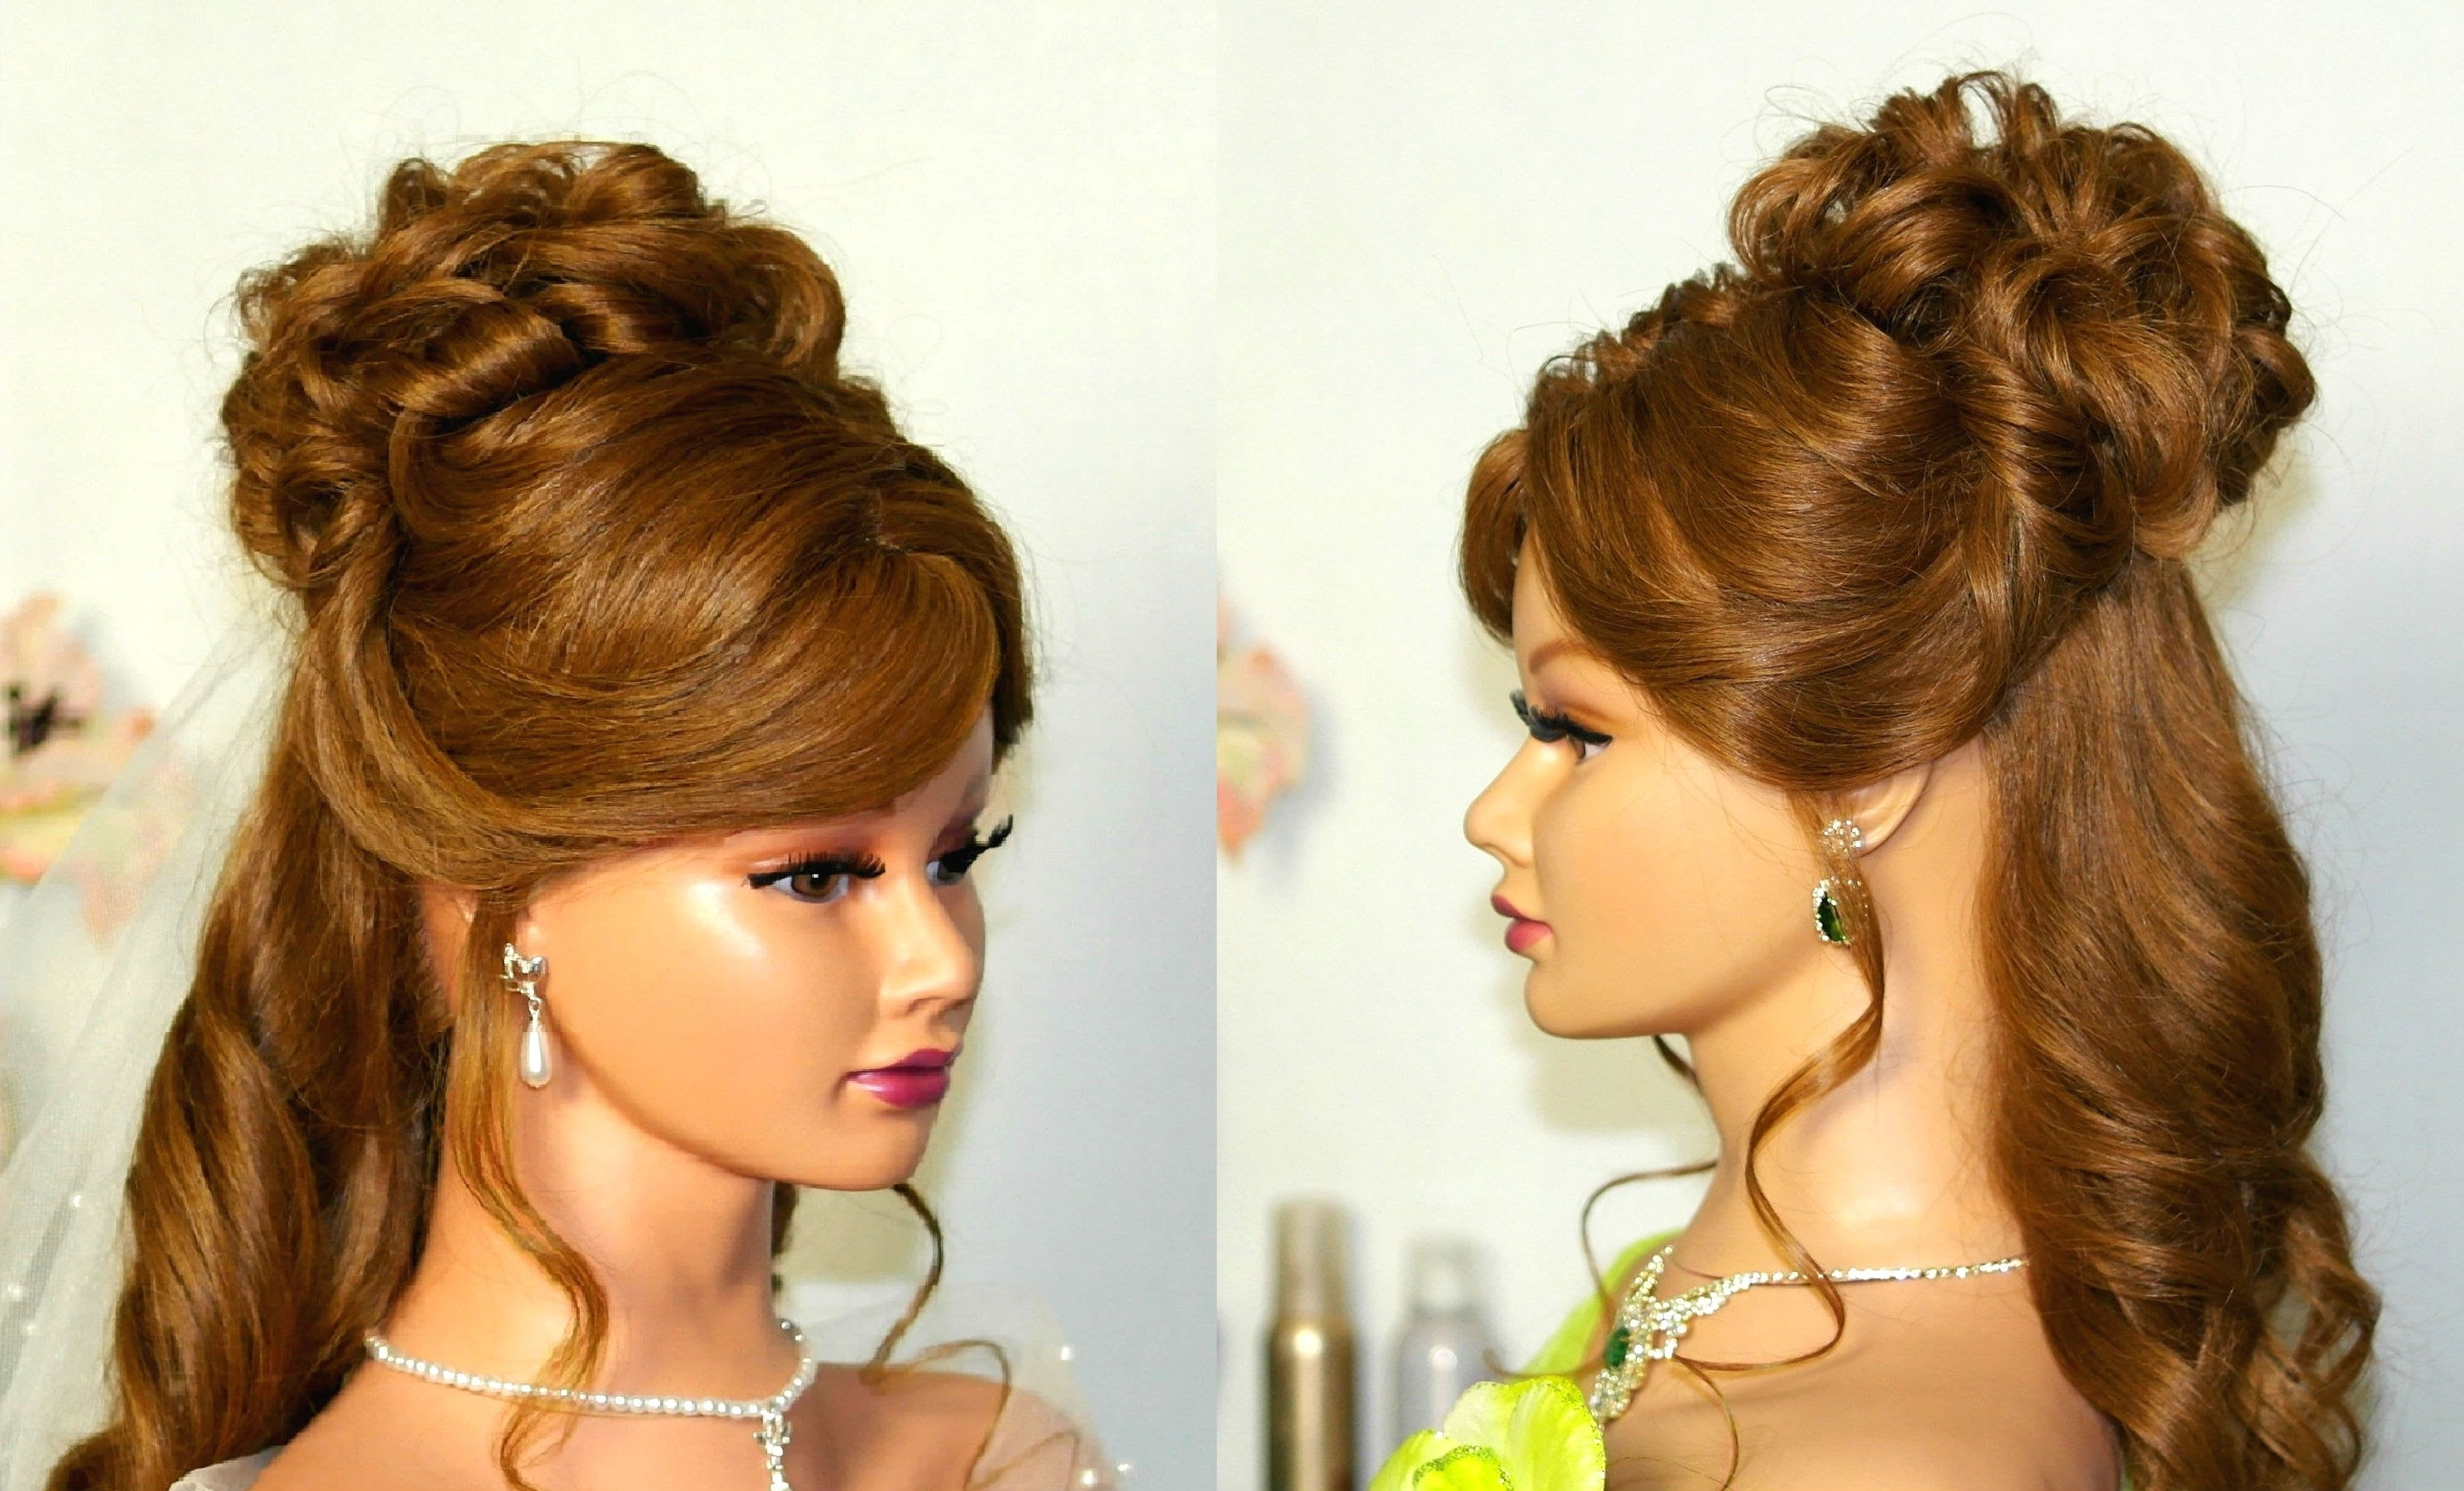 Wedding Hairstyle For Medium Long Hair: Curly Half Up Half Down Regarding Half Curly Updo Hairstyles (View 15 of 15)